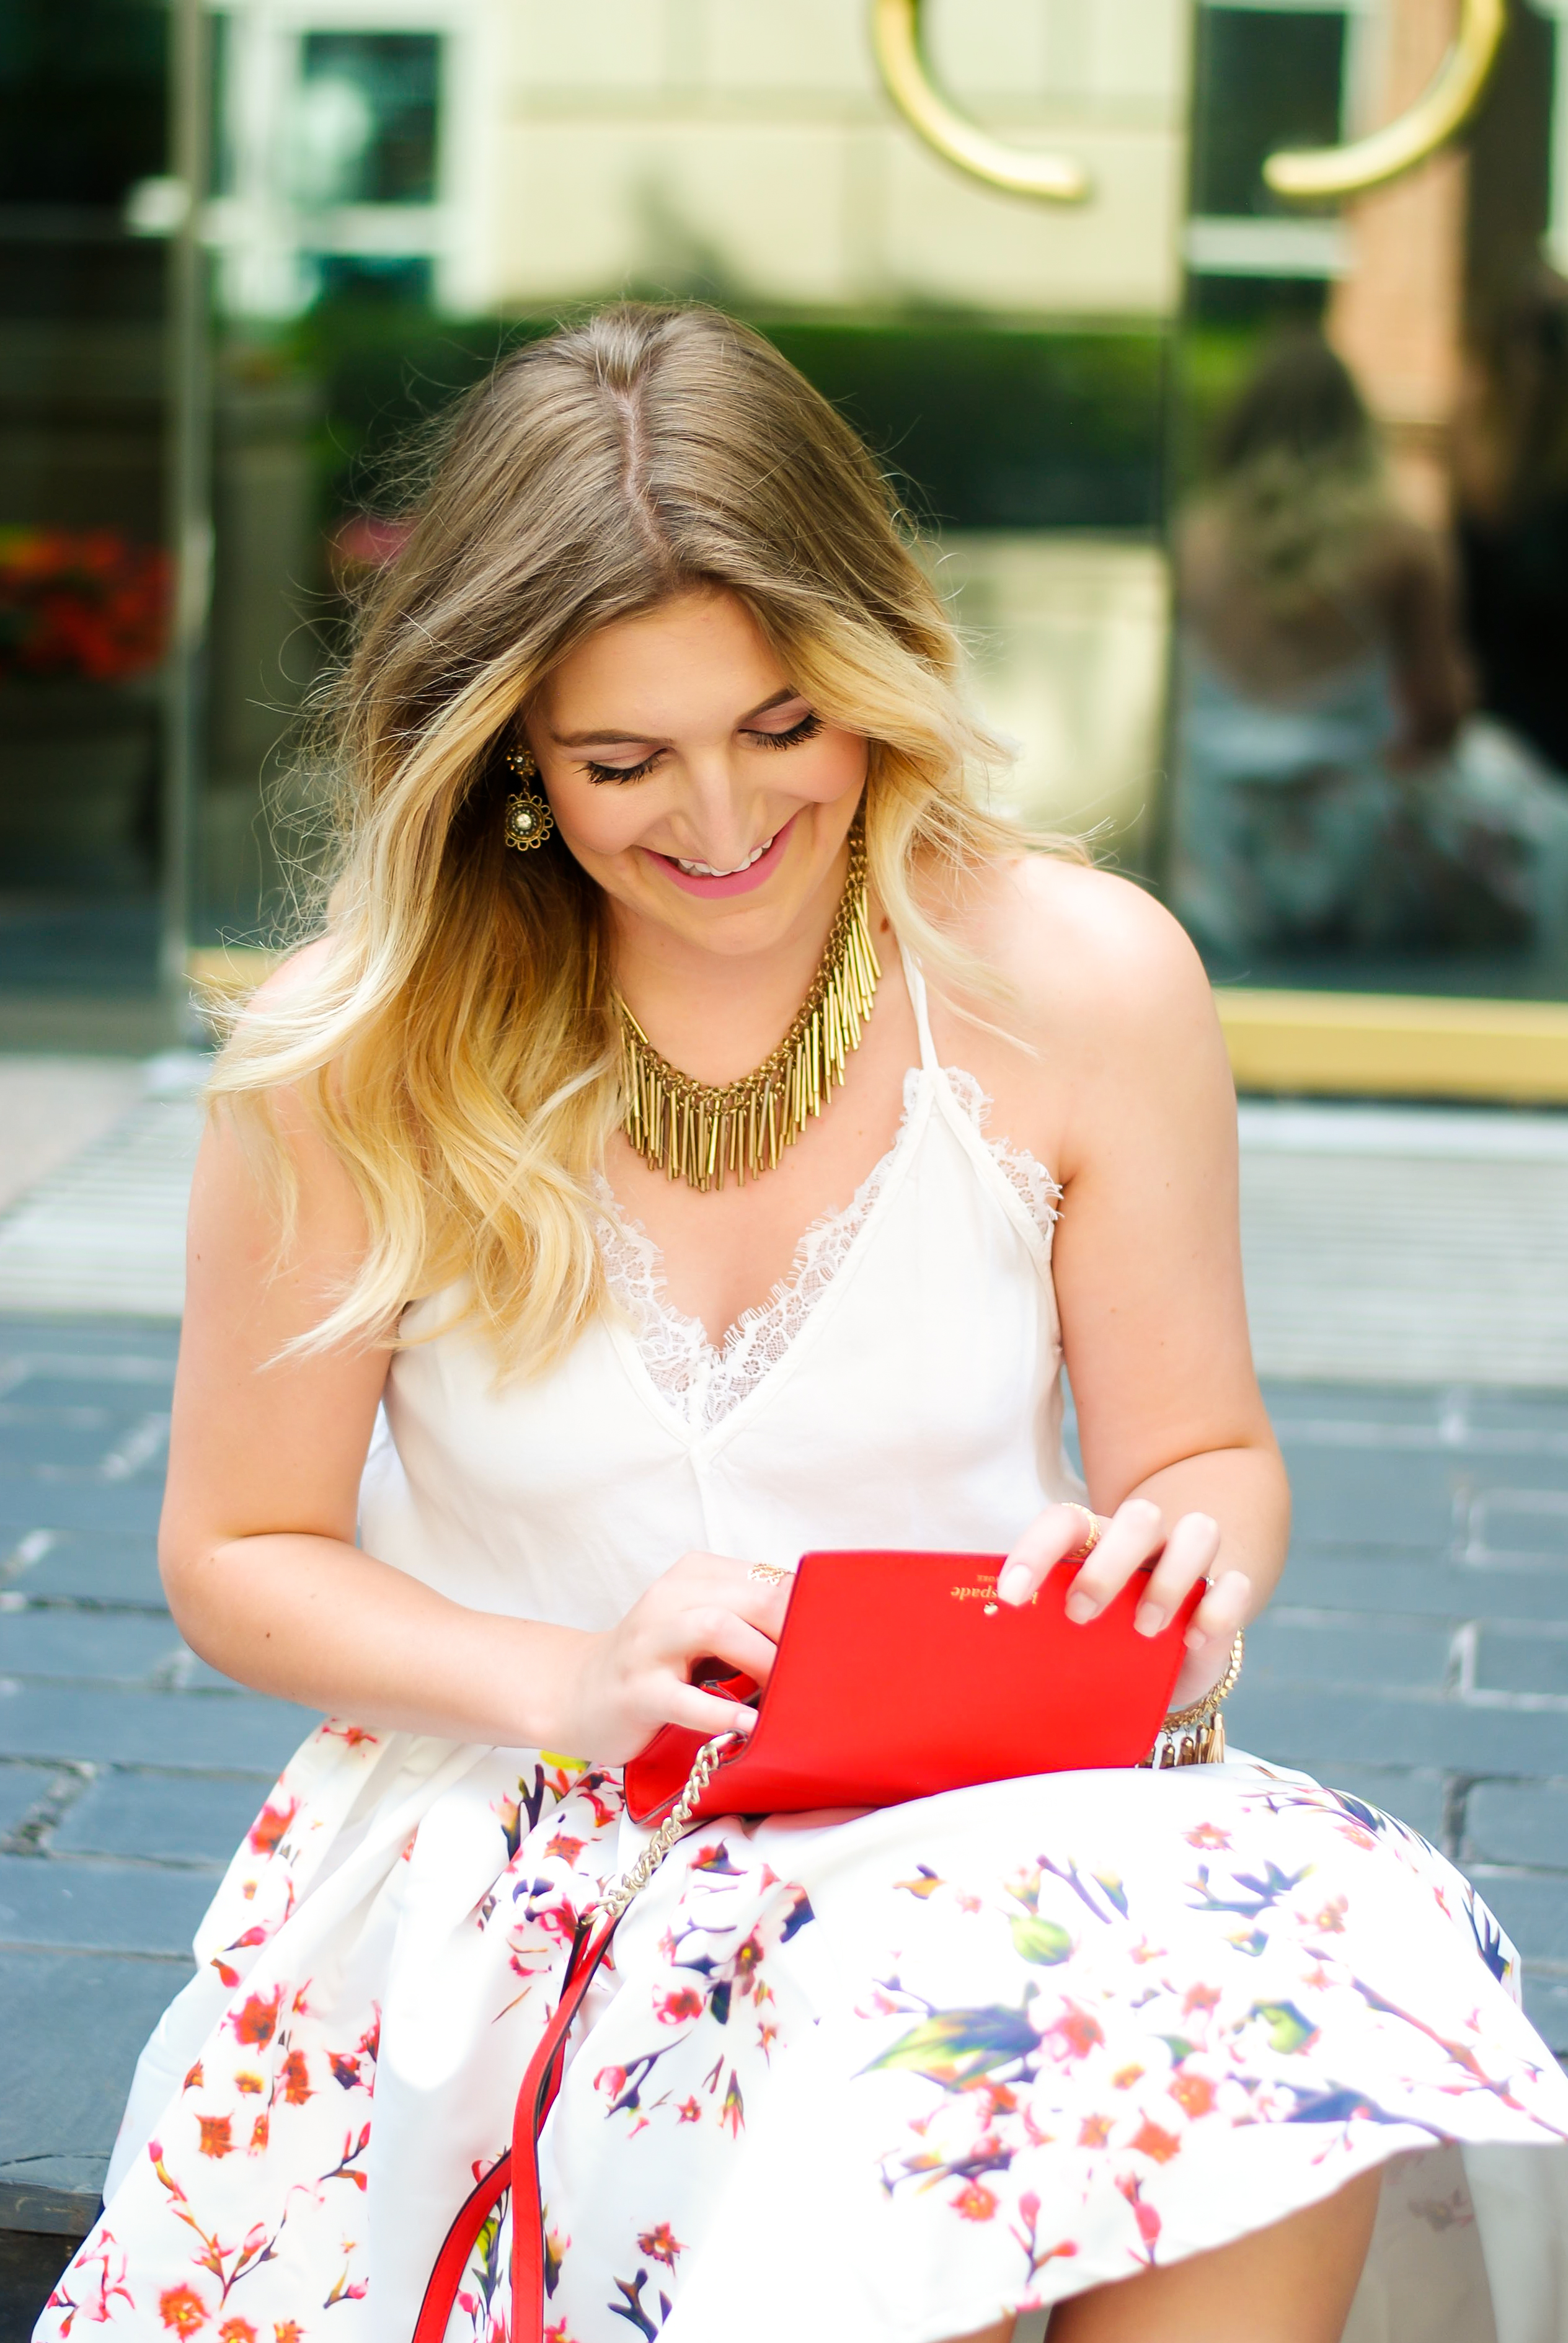 bag details and a summer look | Audrey Madison Stowe Blog